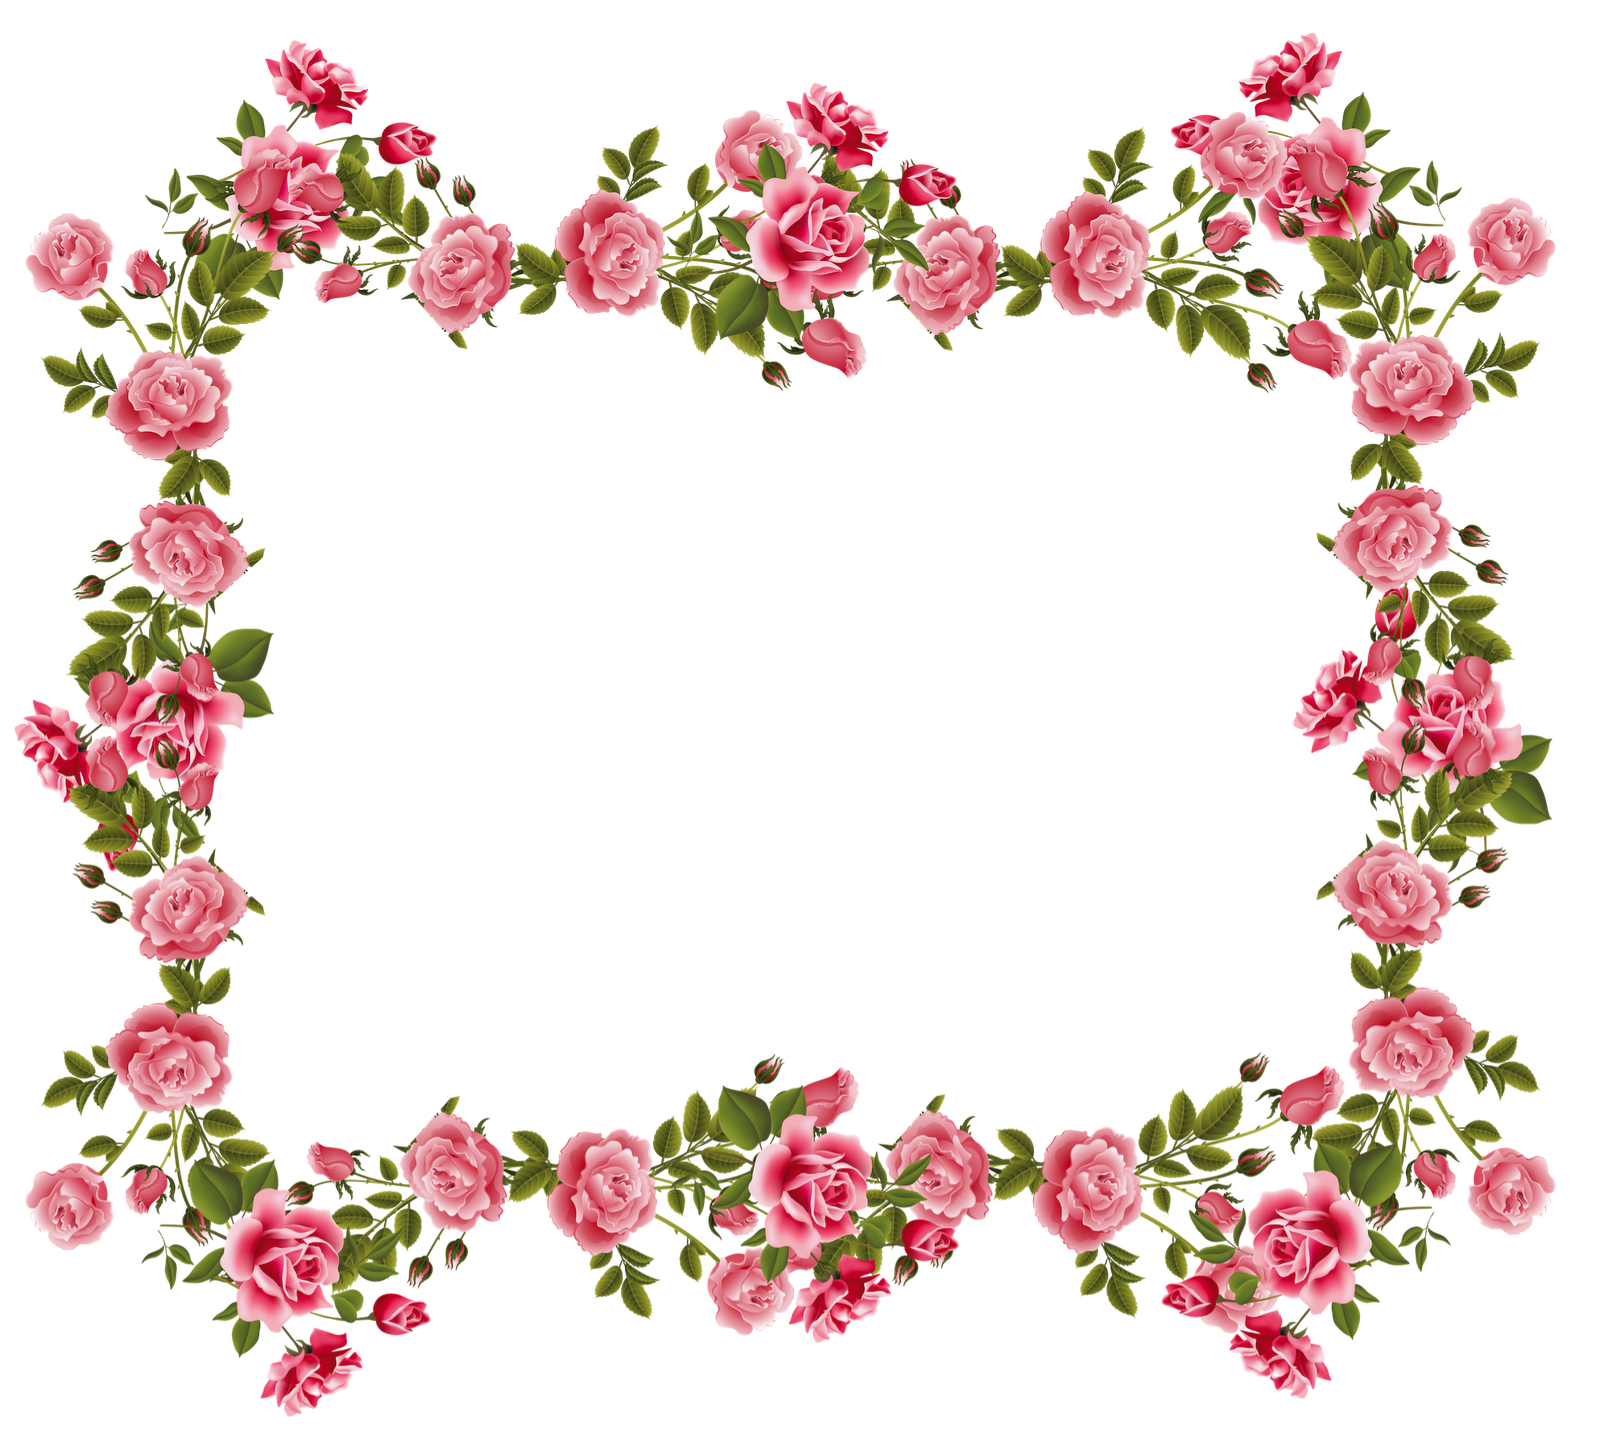 Well designed flower beds. Marco flores vintage png graphic free stock